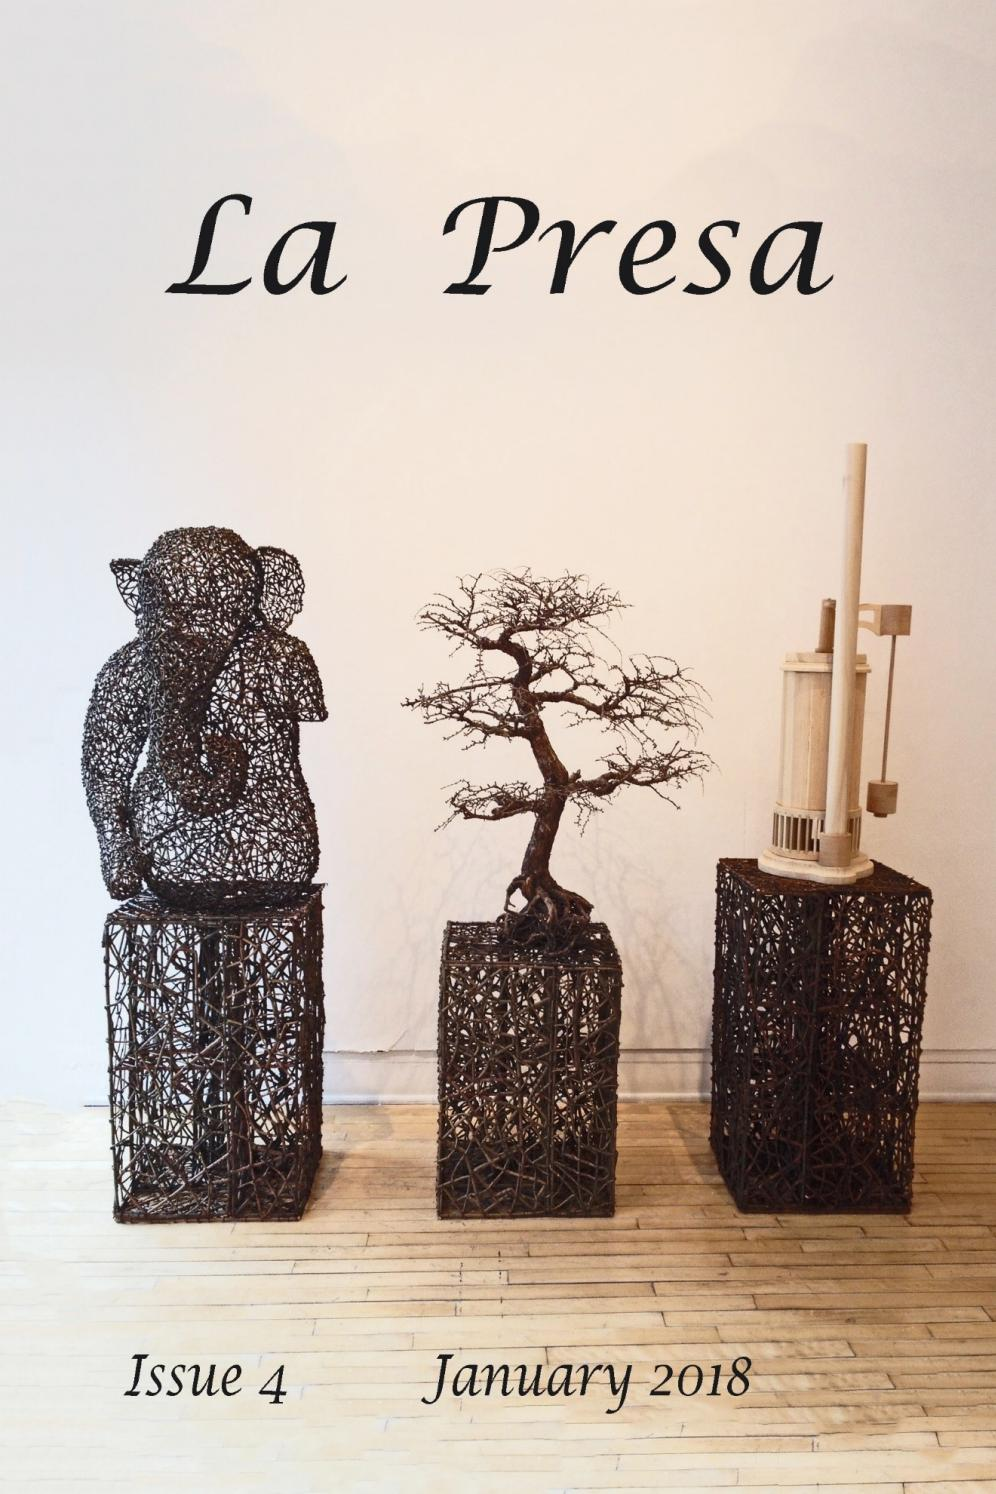 La Presa, Issue 4, January 2018 by Embajadoras Press, La Presa - issuu